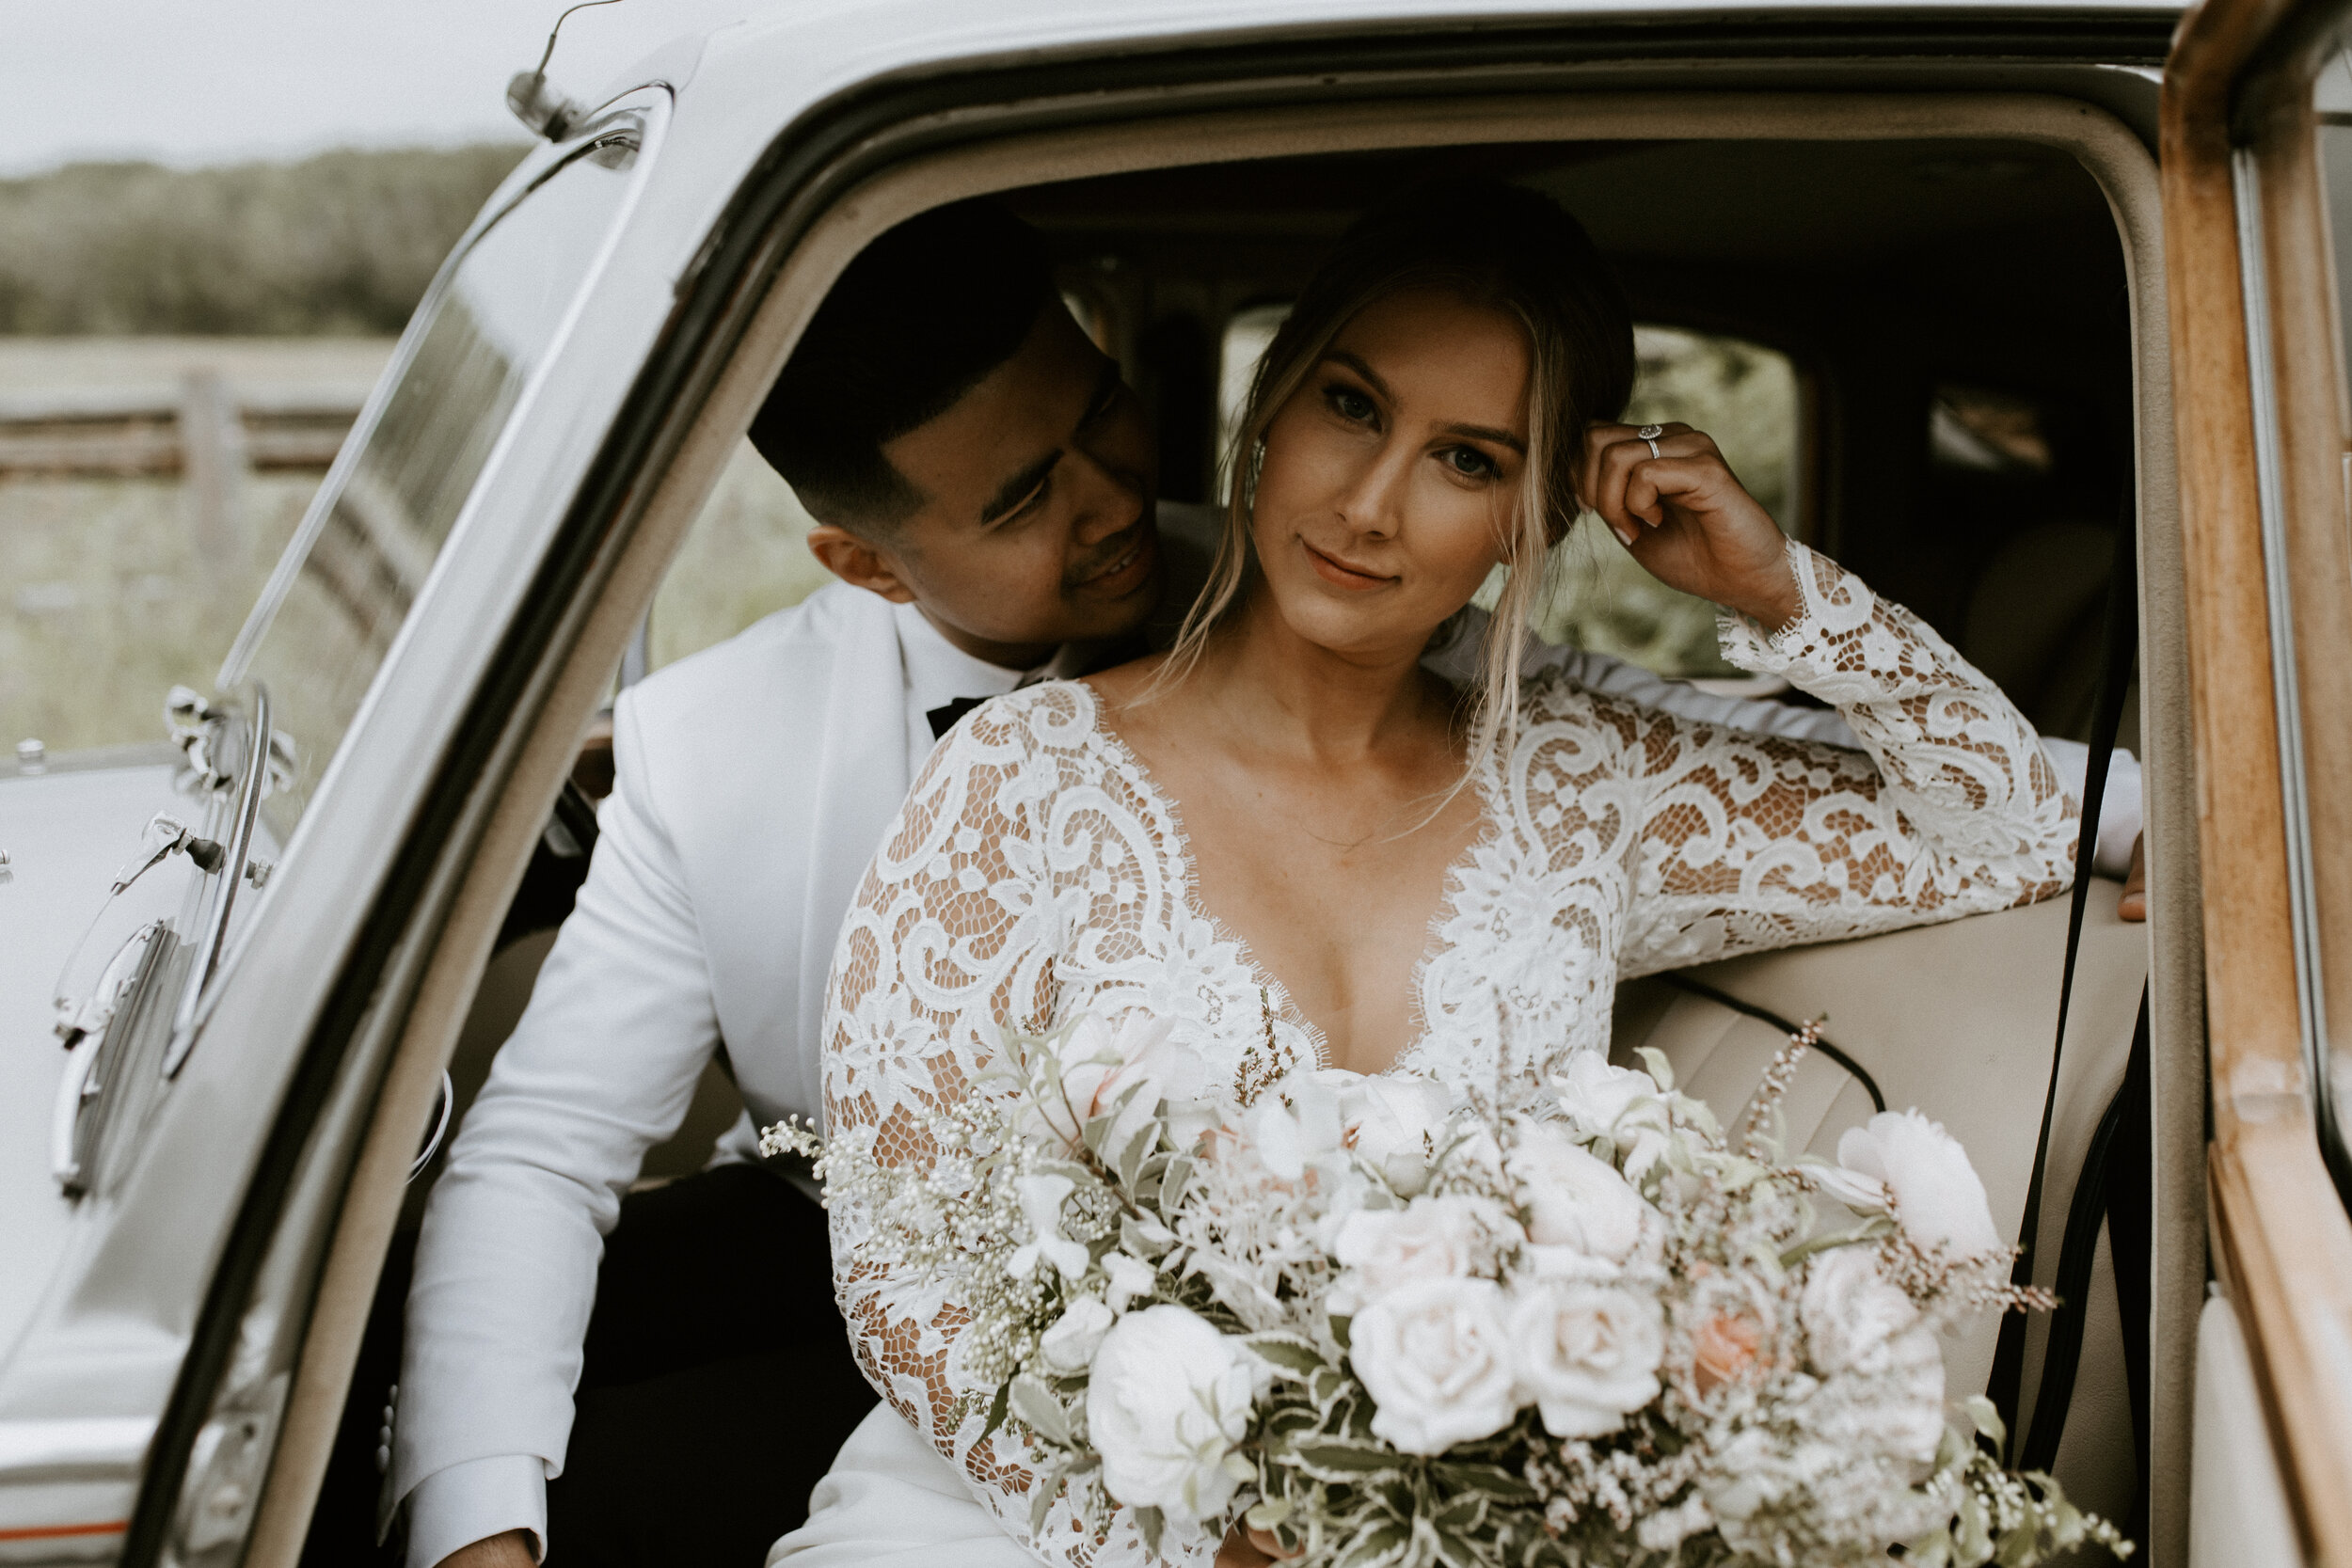 Bride and Groom - Wedding Style Inspiration - Just Married - Vintage Rental Car